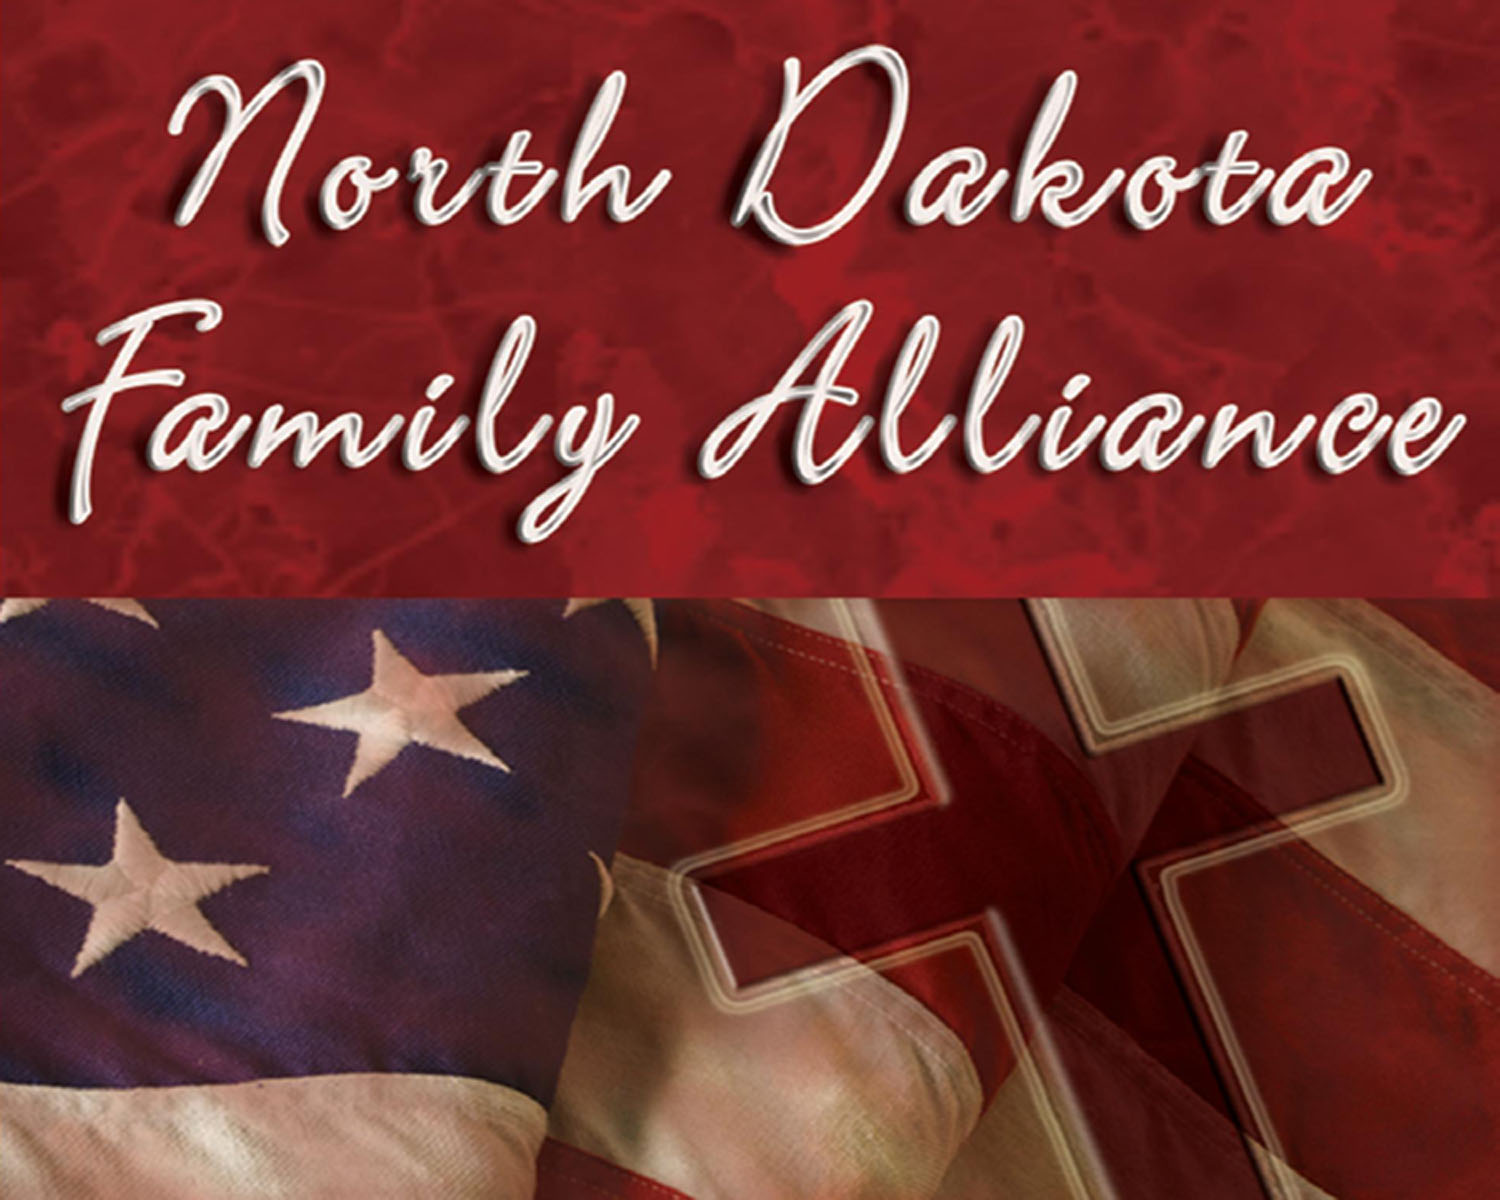 North Dakota Family Alliance